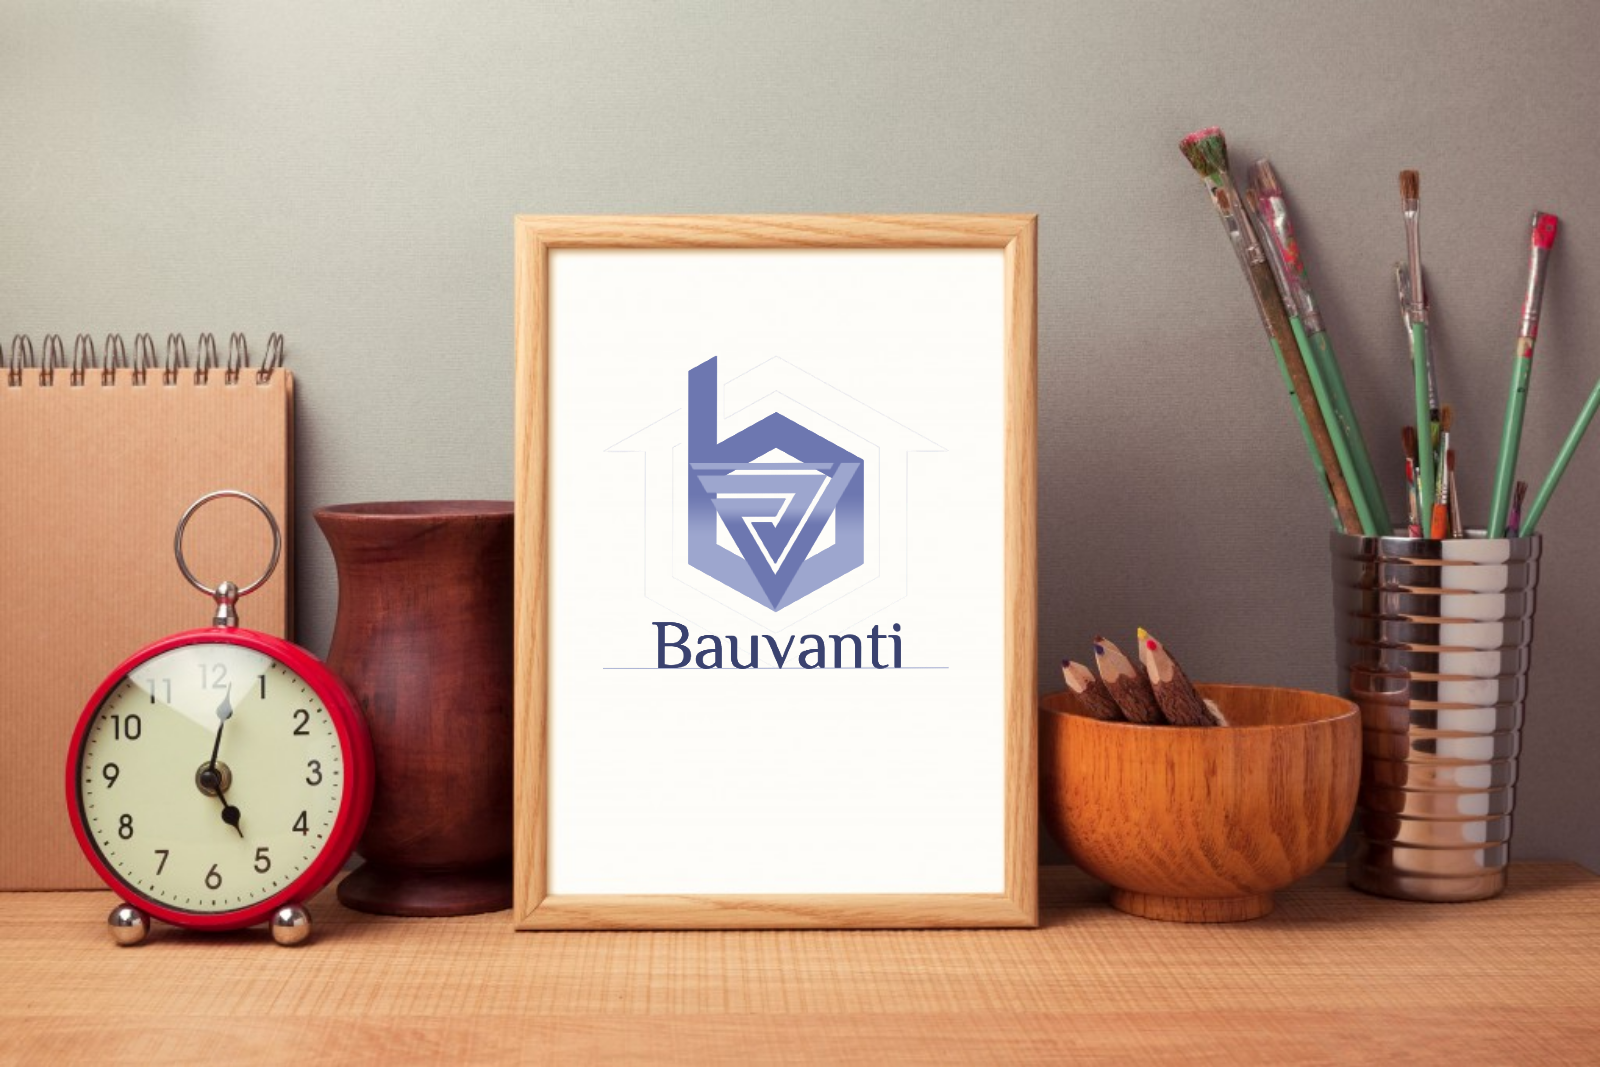 Bauvanti dining and homewares